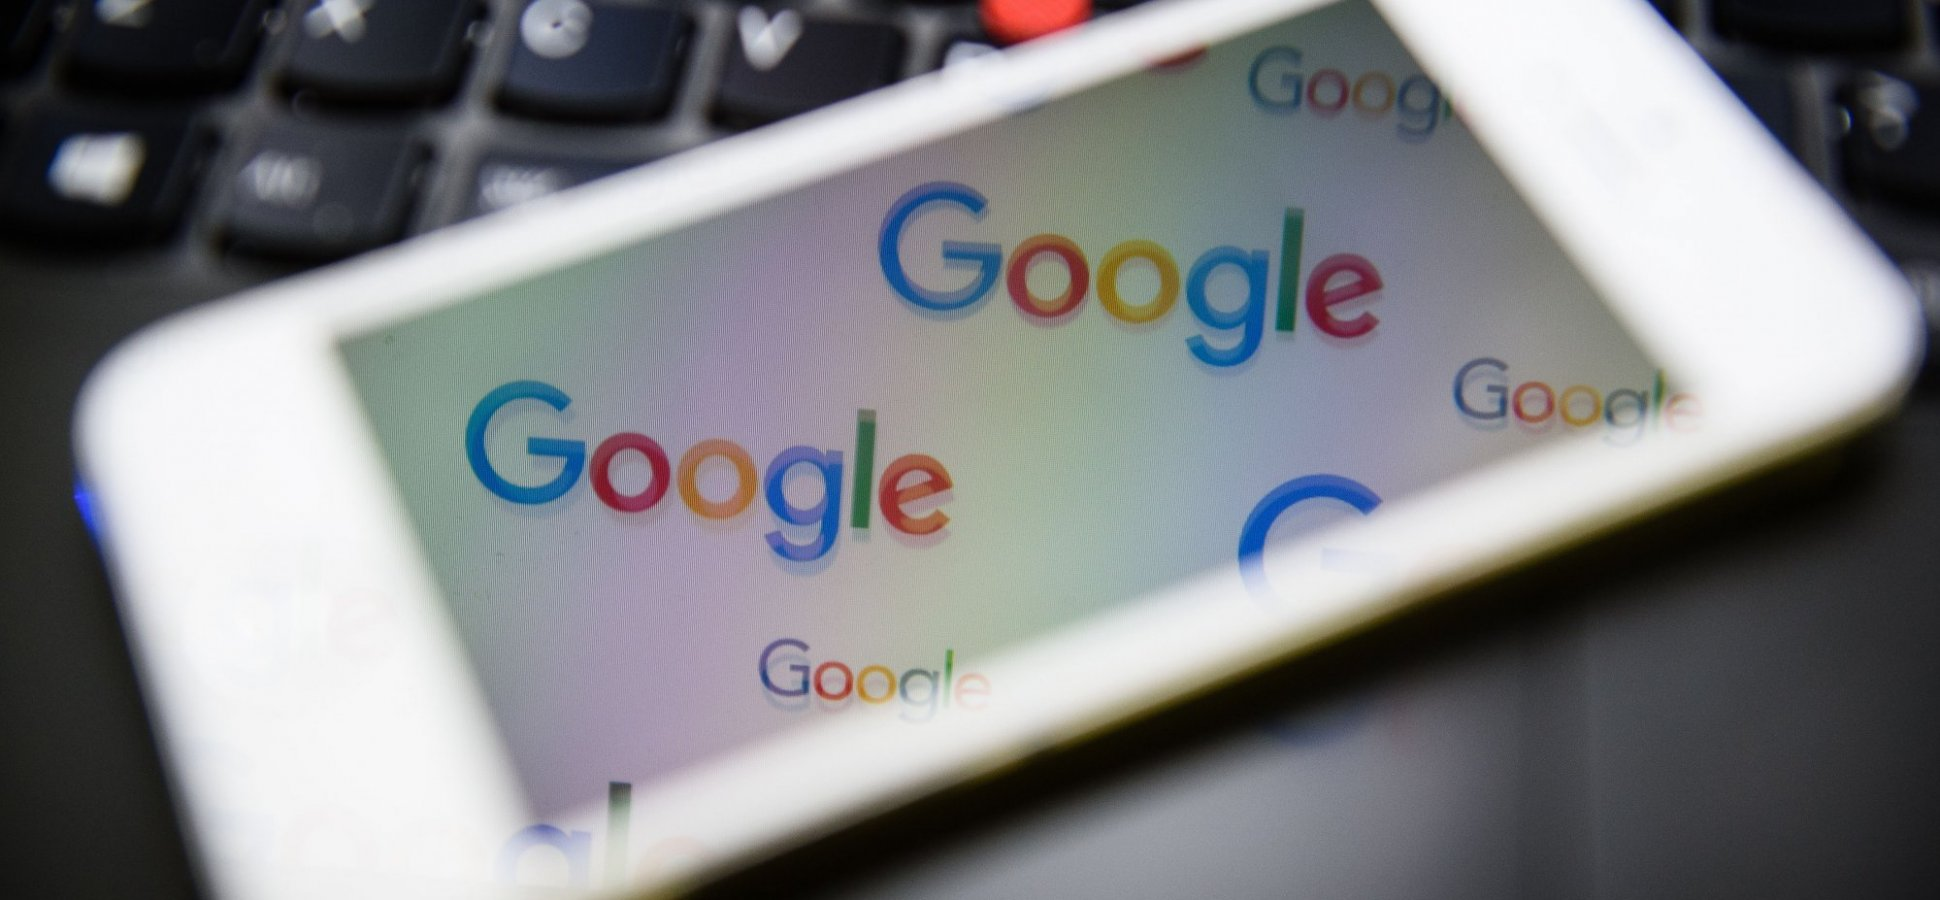 Google's Most Recent Algorithm Update Is Causing Major Headaches. Here's What You Should Know